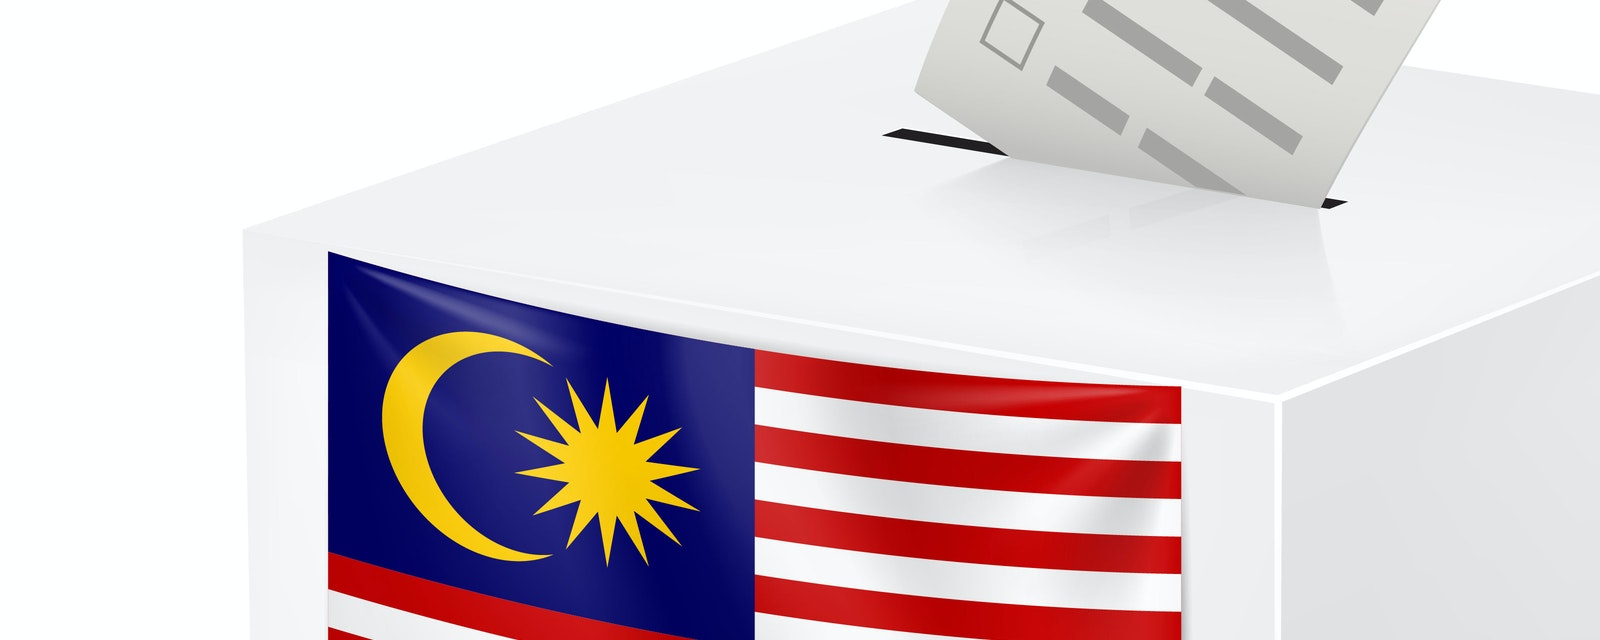 Illustration of voting booth in Malaysia